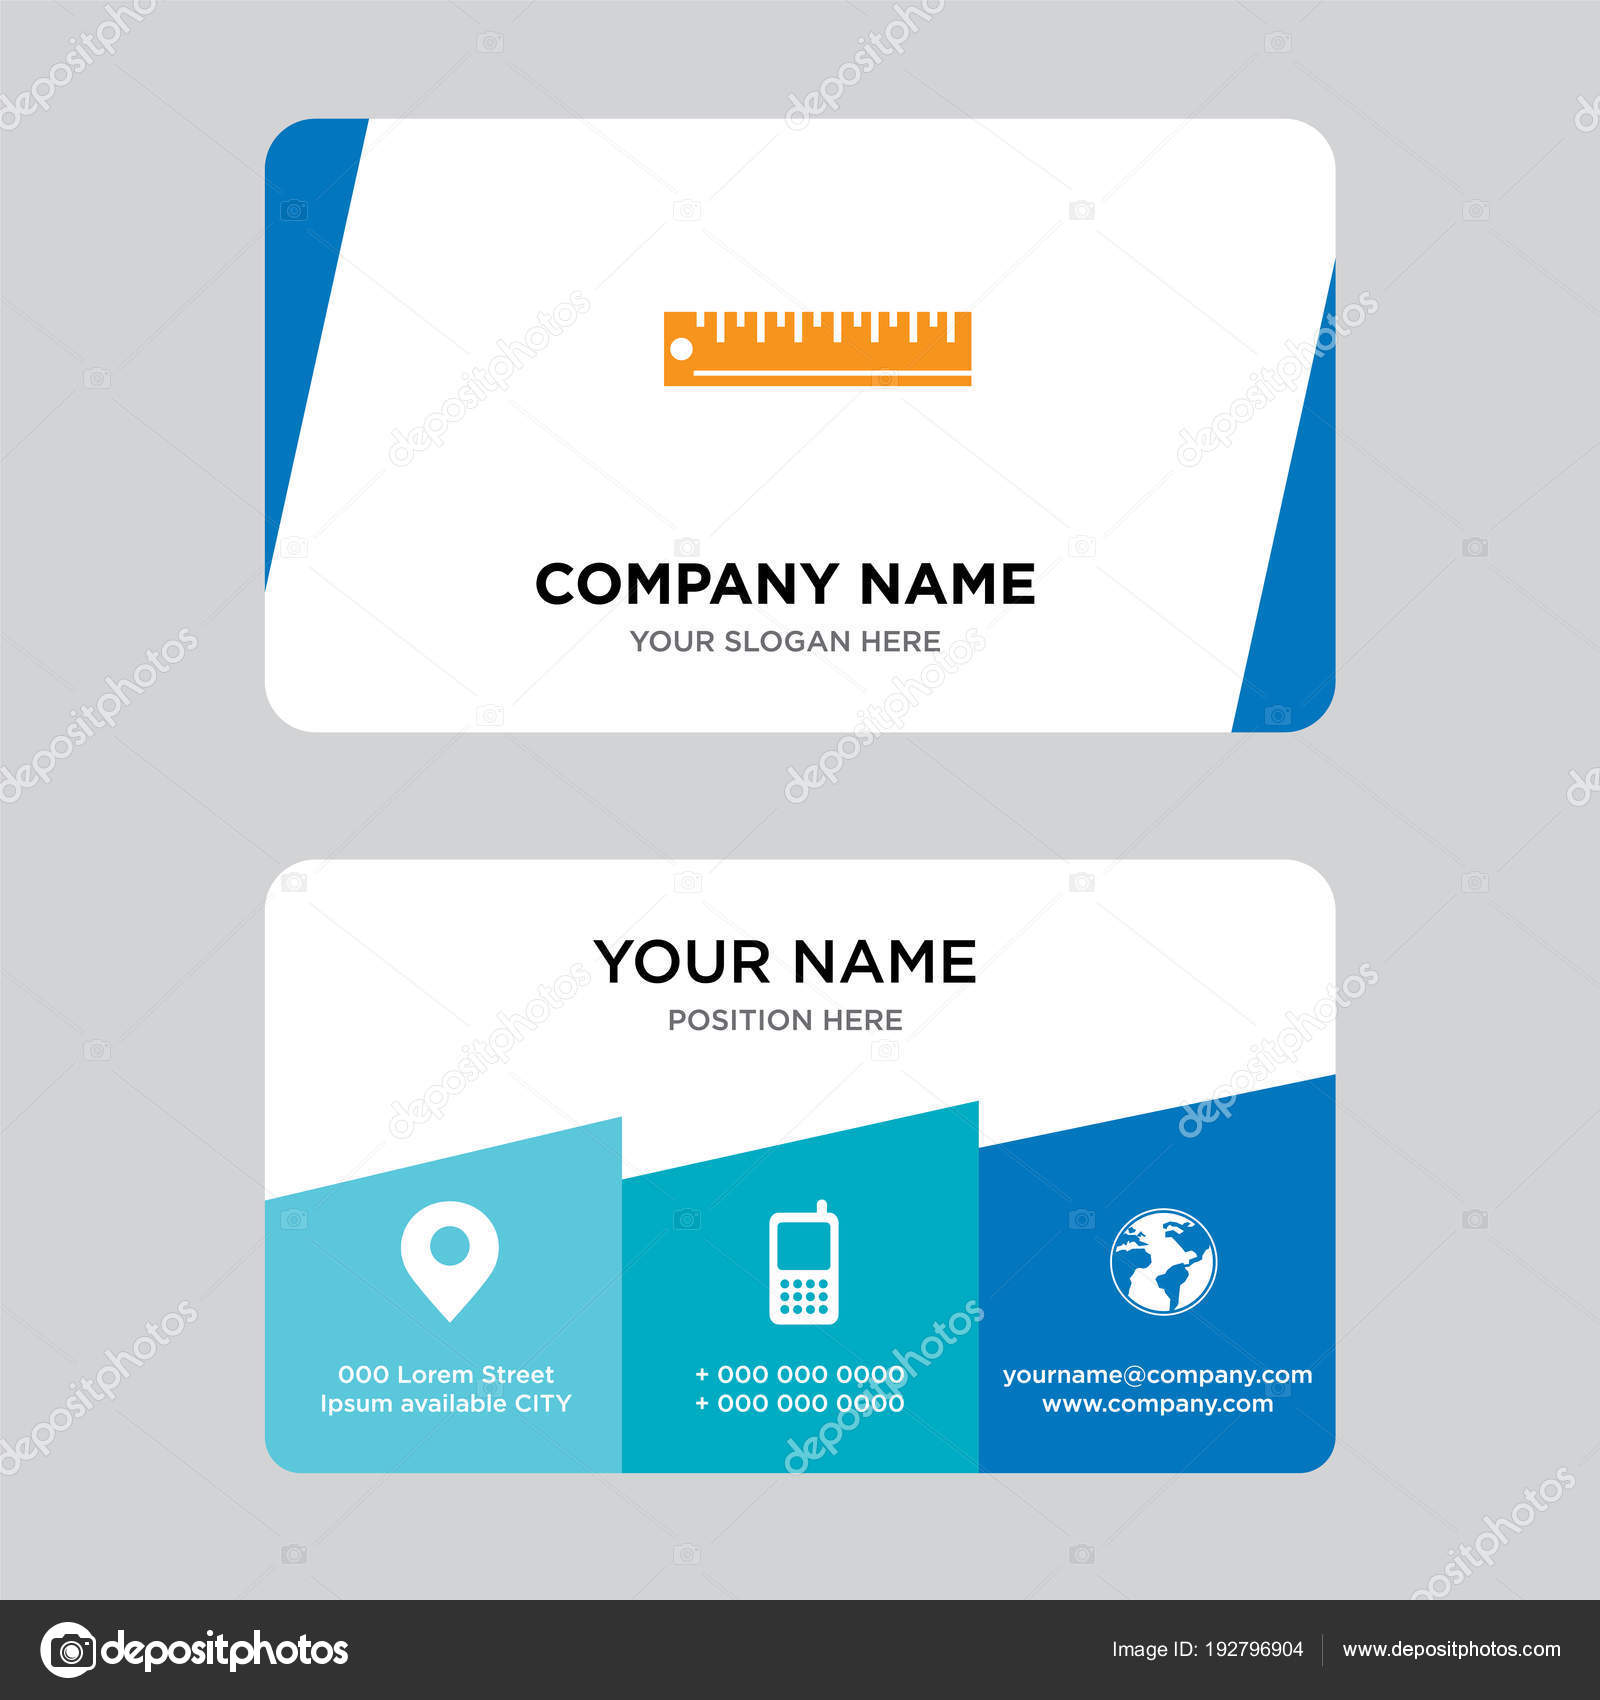 Ruler business card design template stock vector urfandadashov ruler business card design template stock vector colourmoves